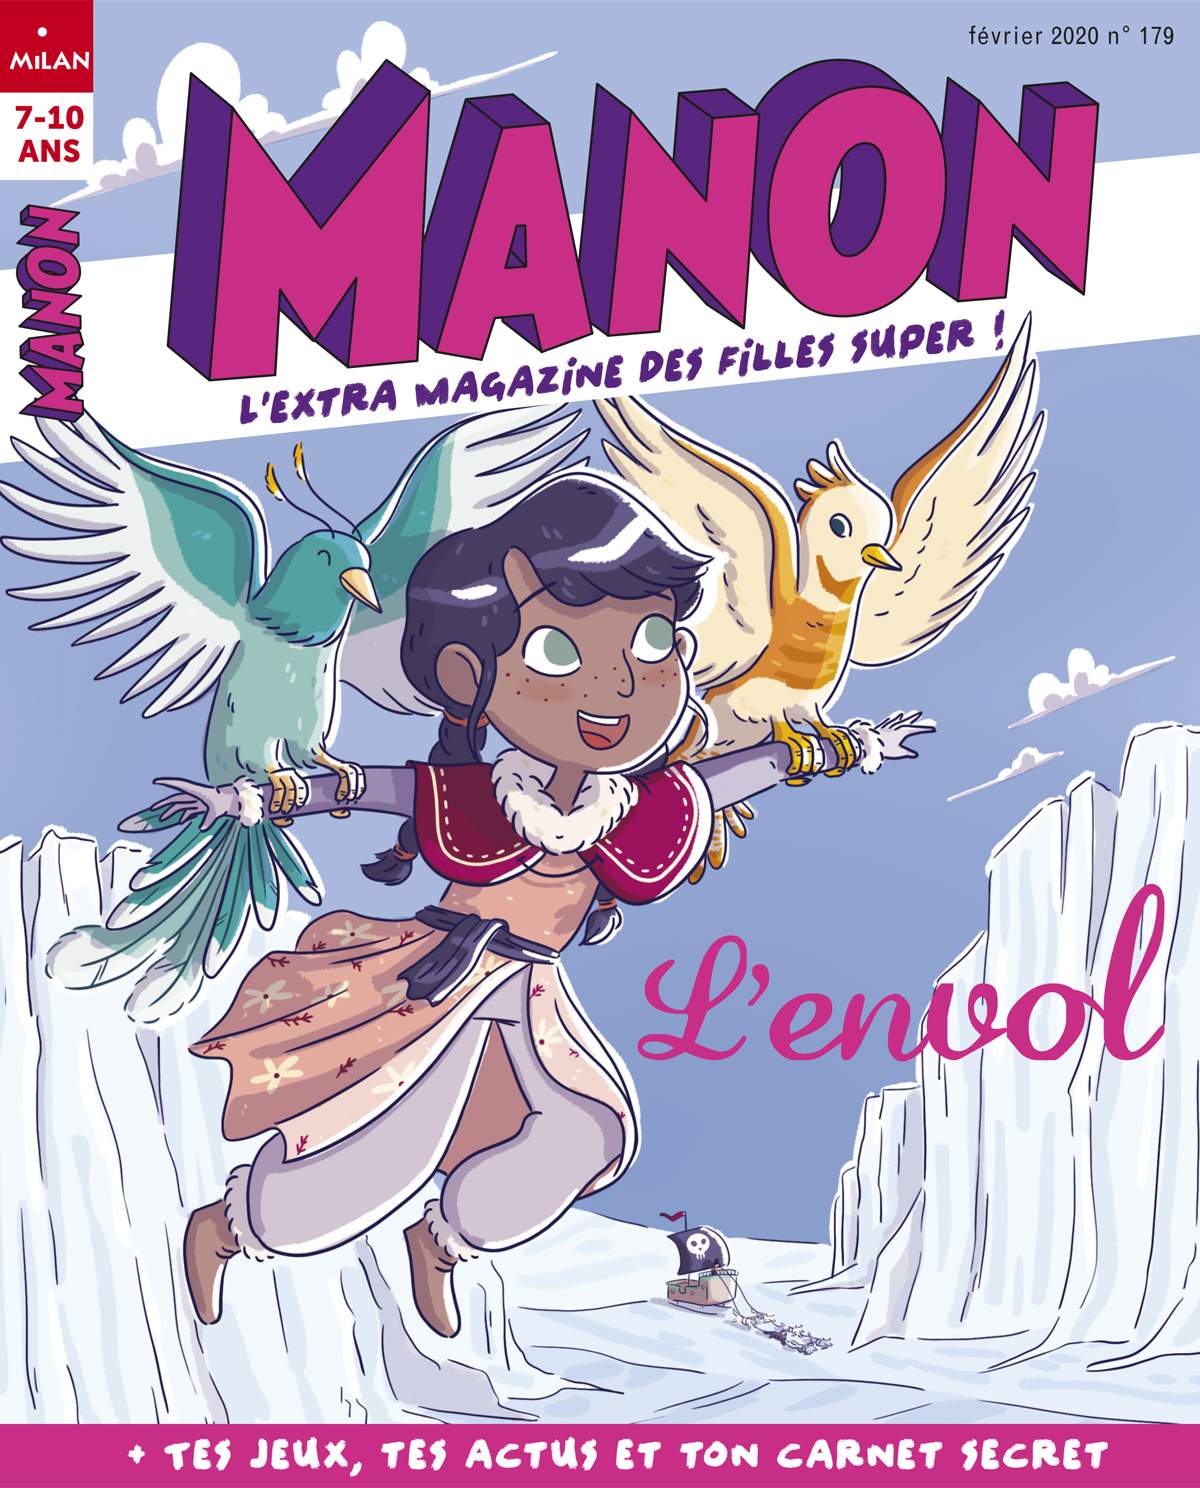 manon magazine abonnement